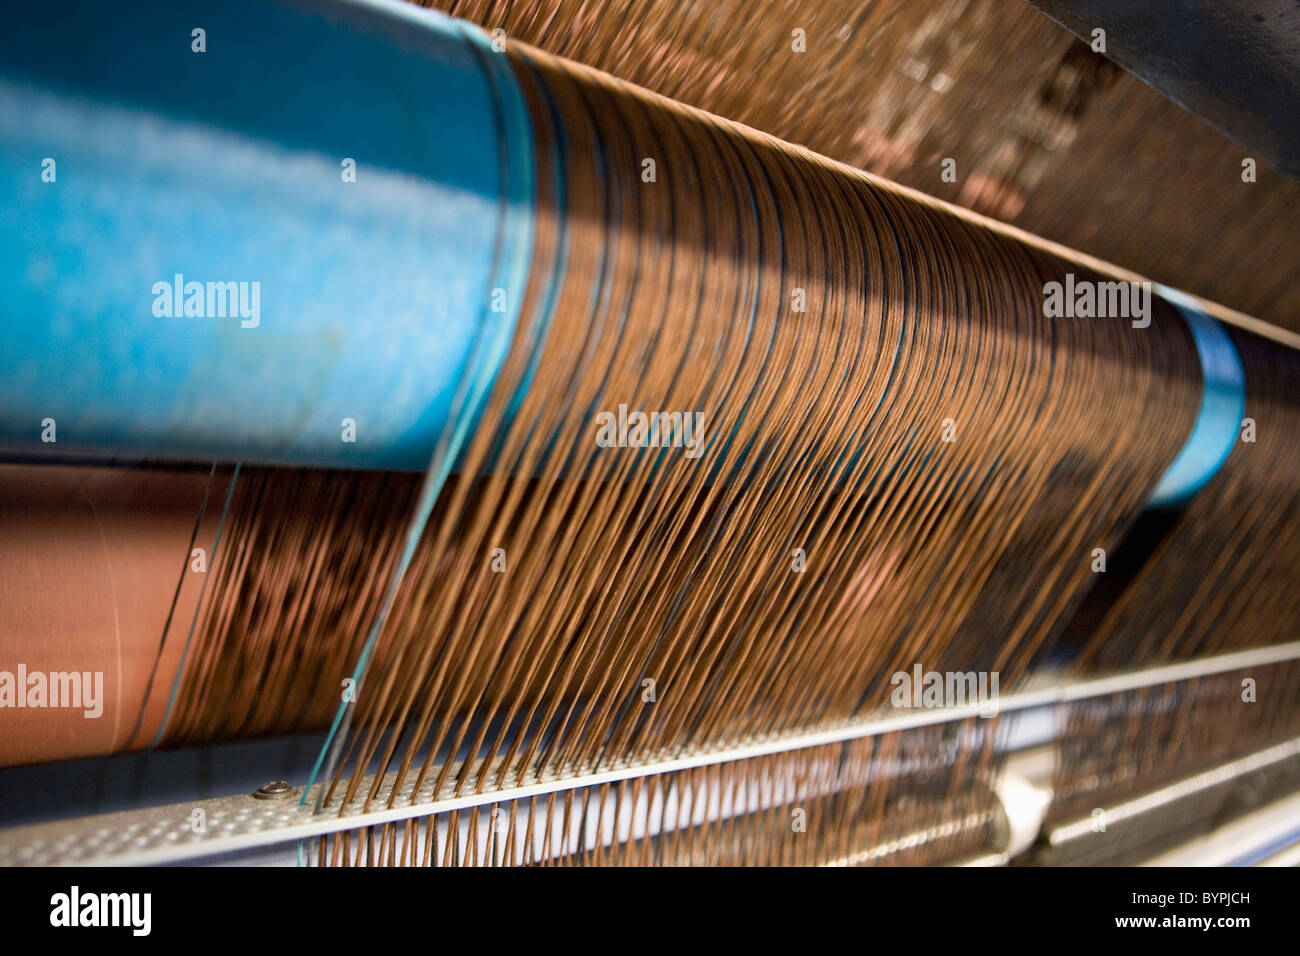 Loom weaving carpet in carpet tile factory - Stock Image